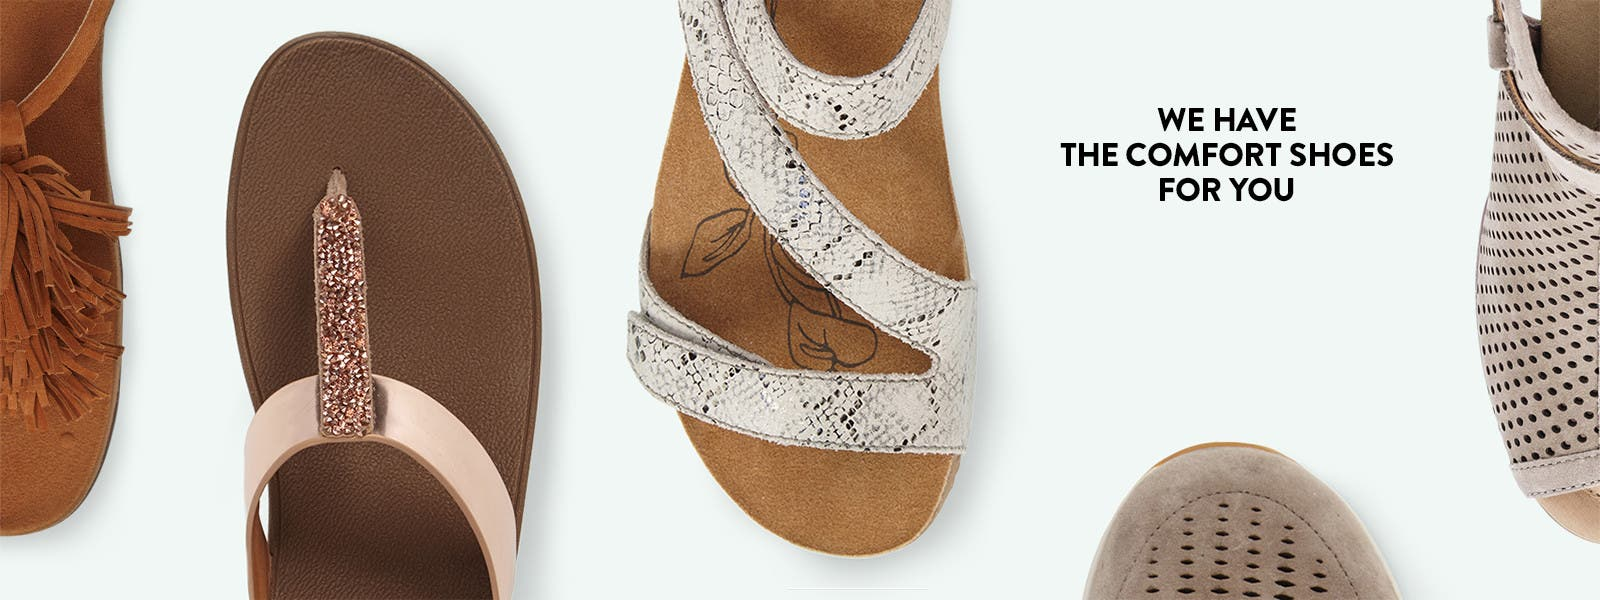 We have the comfort shoes for you.